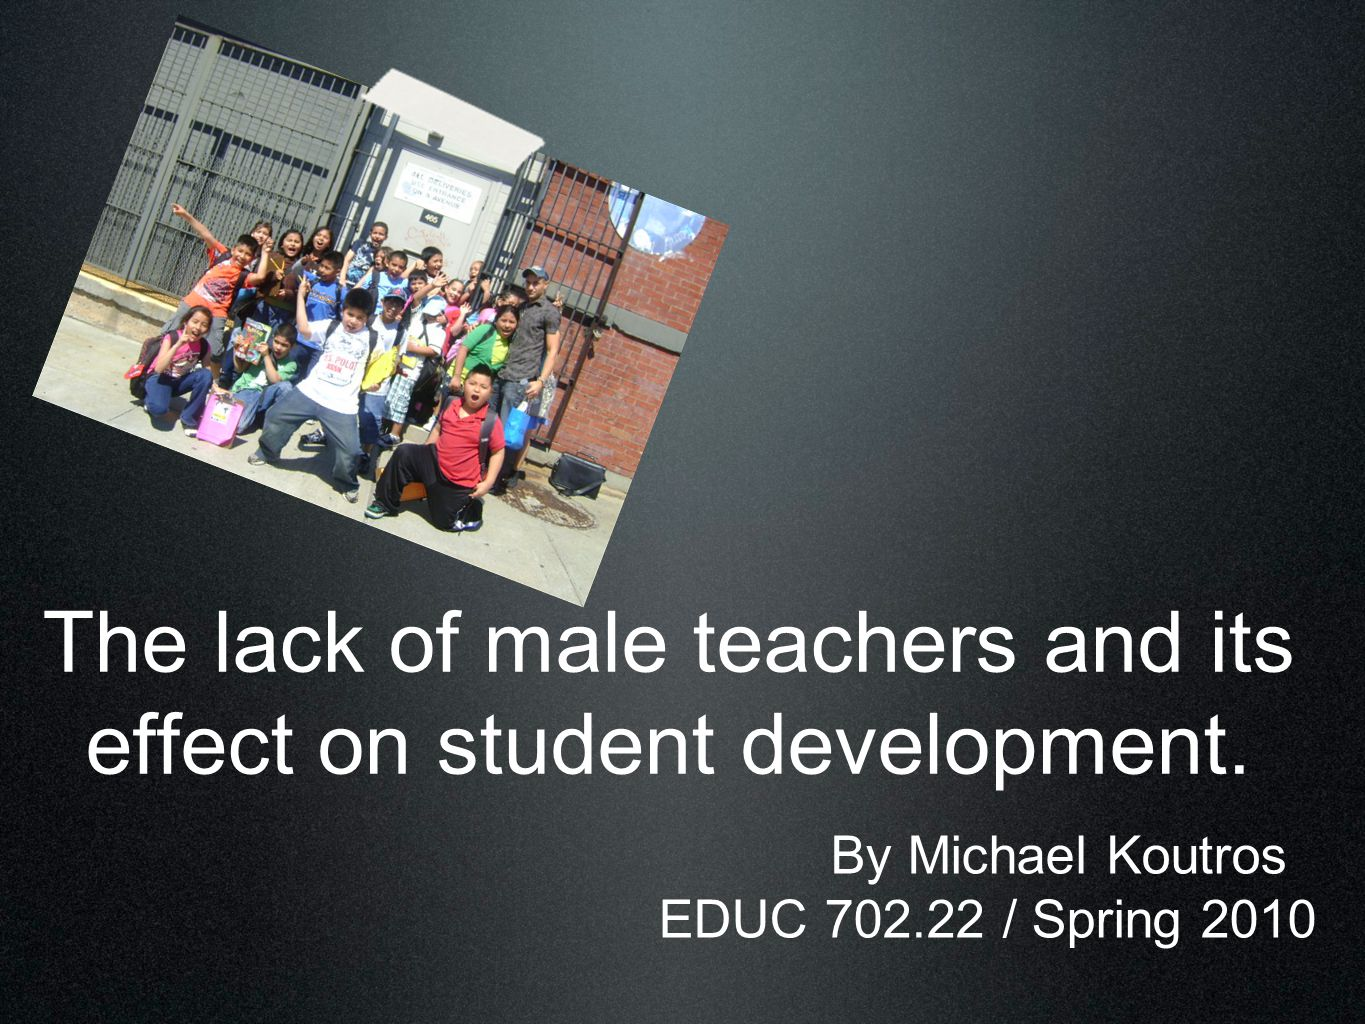 The lack of male teachers and its effect on student development.